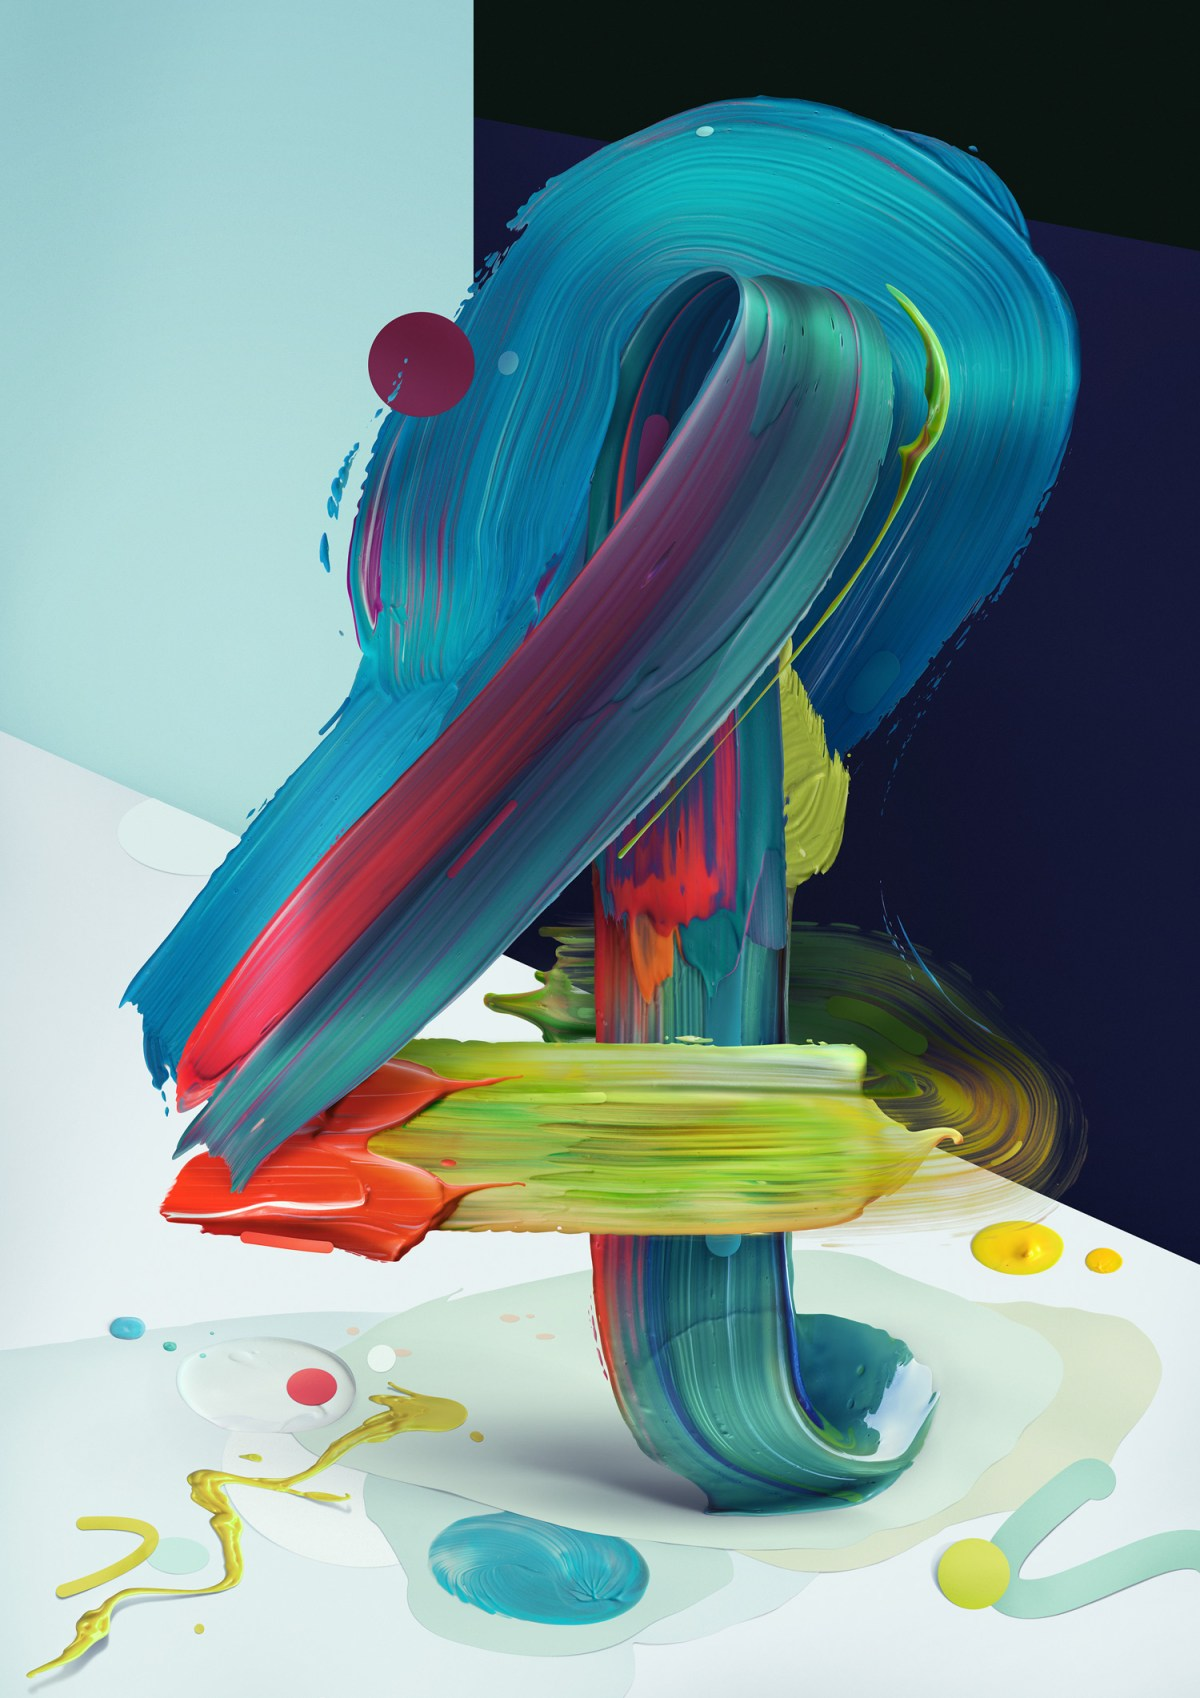 Painted Typography by Pawel Nolbert typography posters and prints paint illustration digital